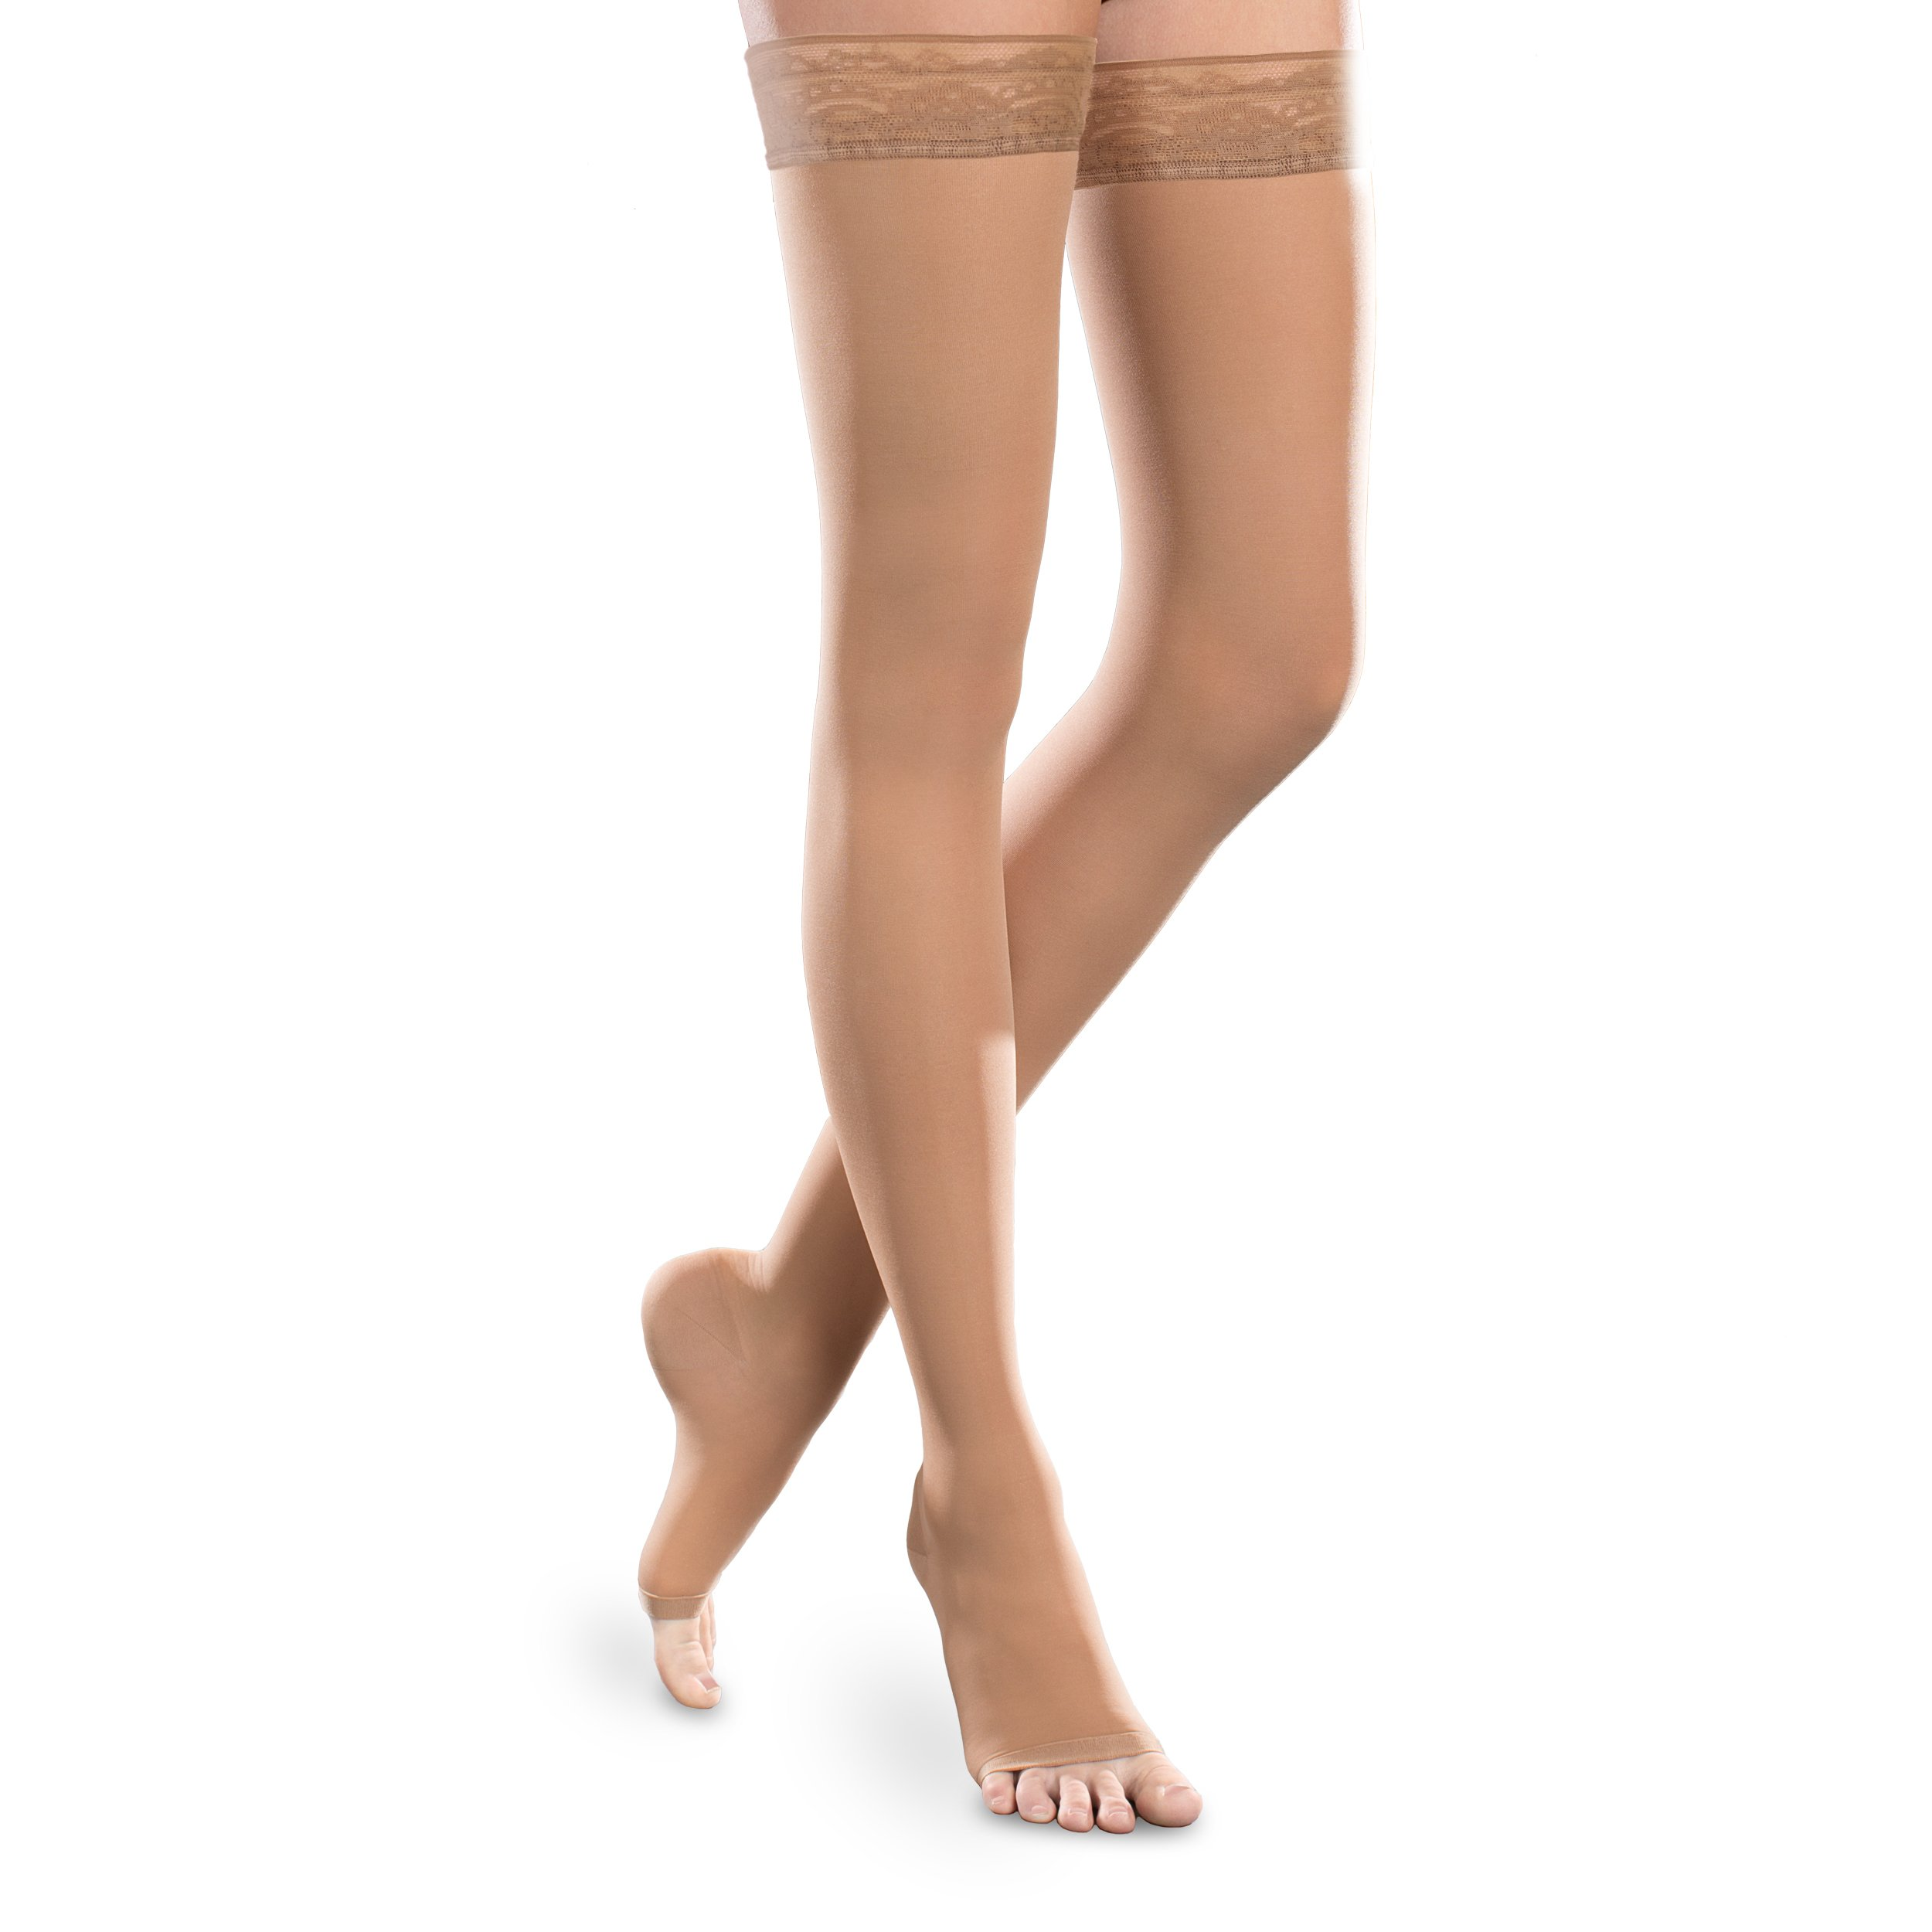 Sheer Ease Women's Open-Toe Thigh High Stockings - 20-30mmHg Moderate Compression Nylons (Sand, Small Long)